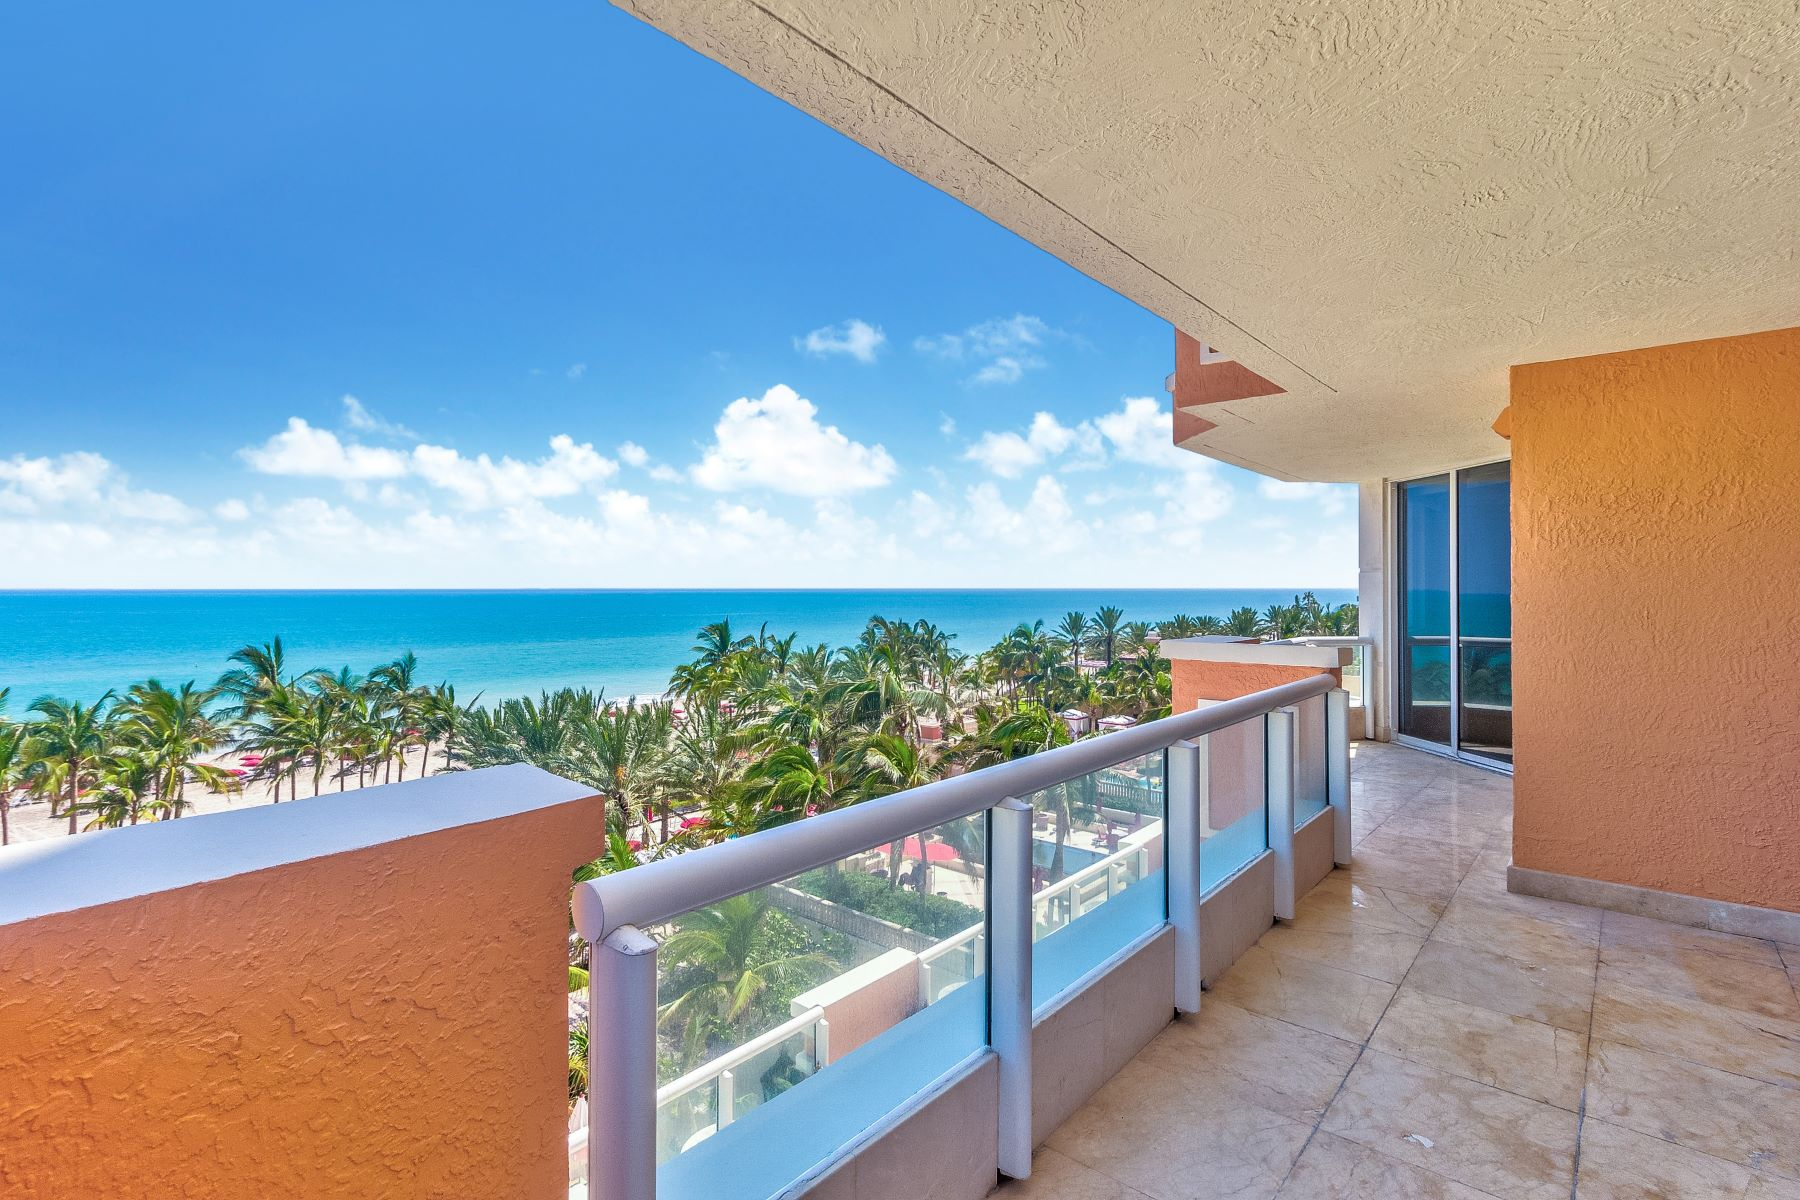 Condominium for Sale at 17875 Collins Ave 17875 Collins Ave 601 Sunny Isles Beach, Florida 33160 United States